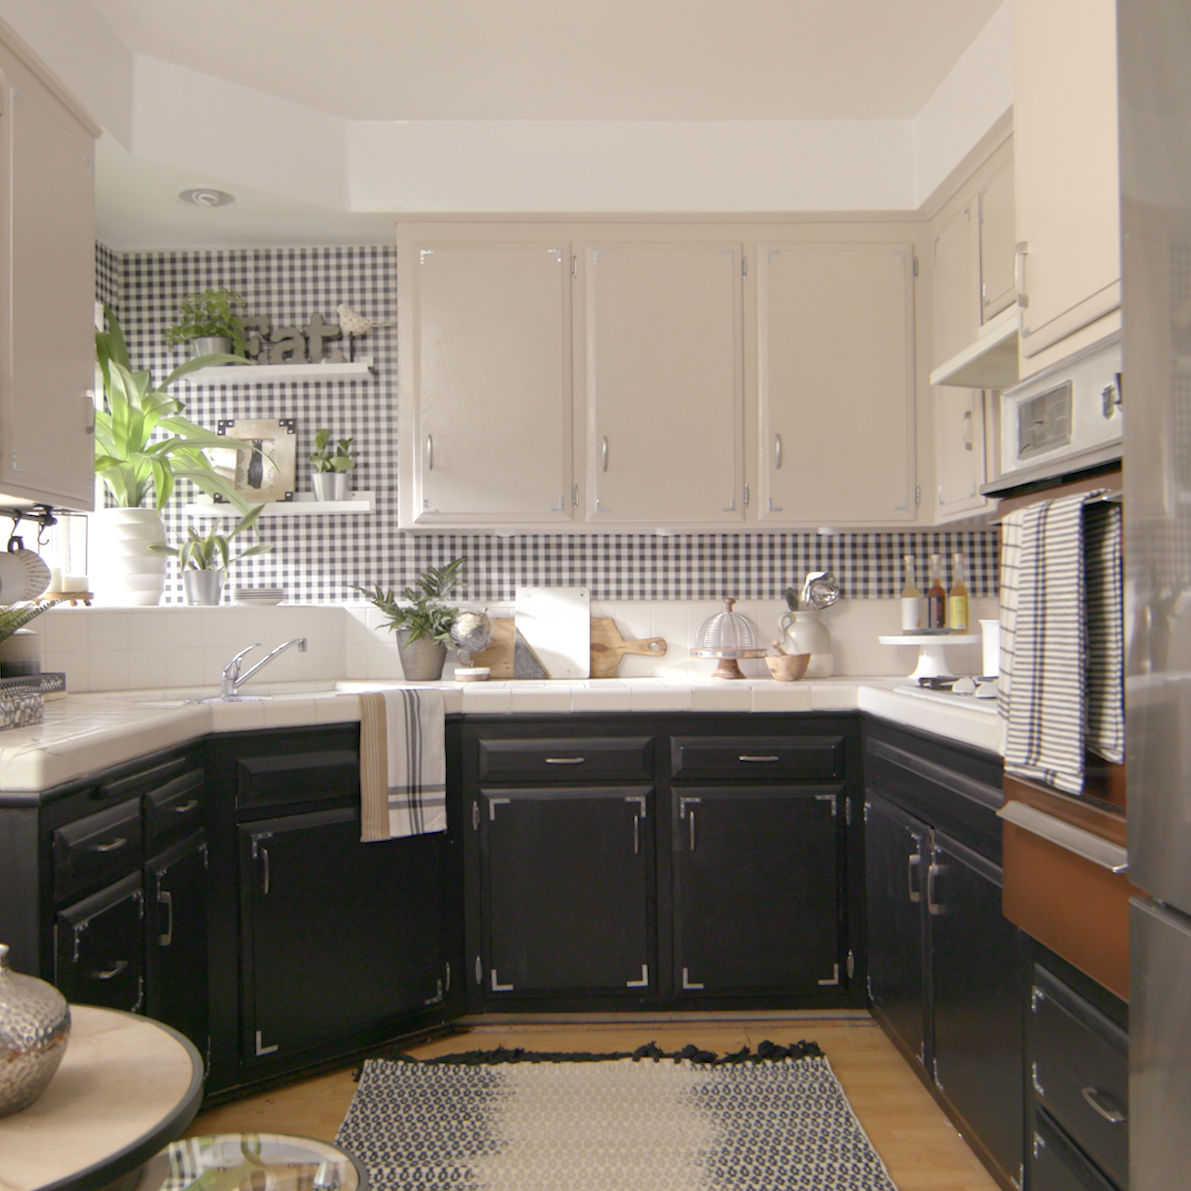 Kitchen Store Room Design: Who Wants A Bland Boring Kitchen? Watch Julie Khuu Use